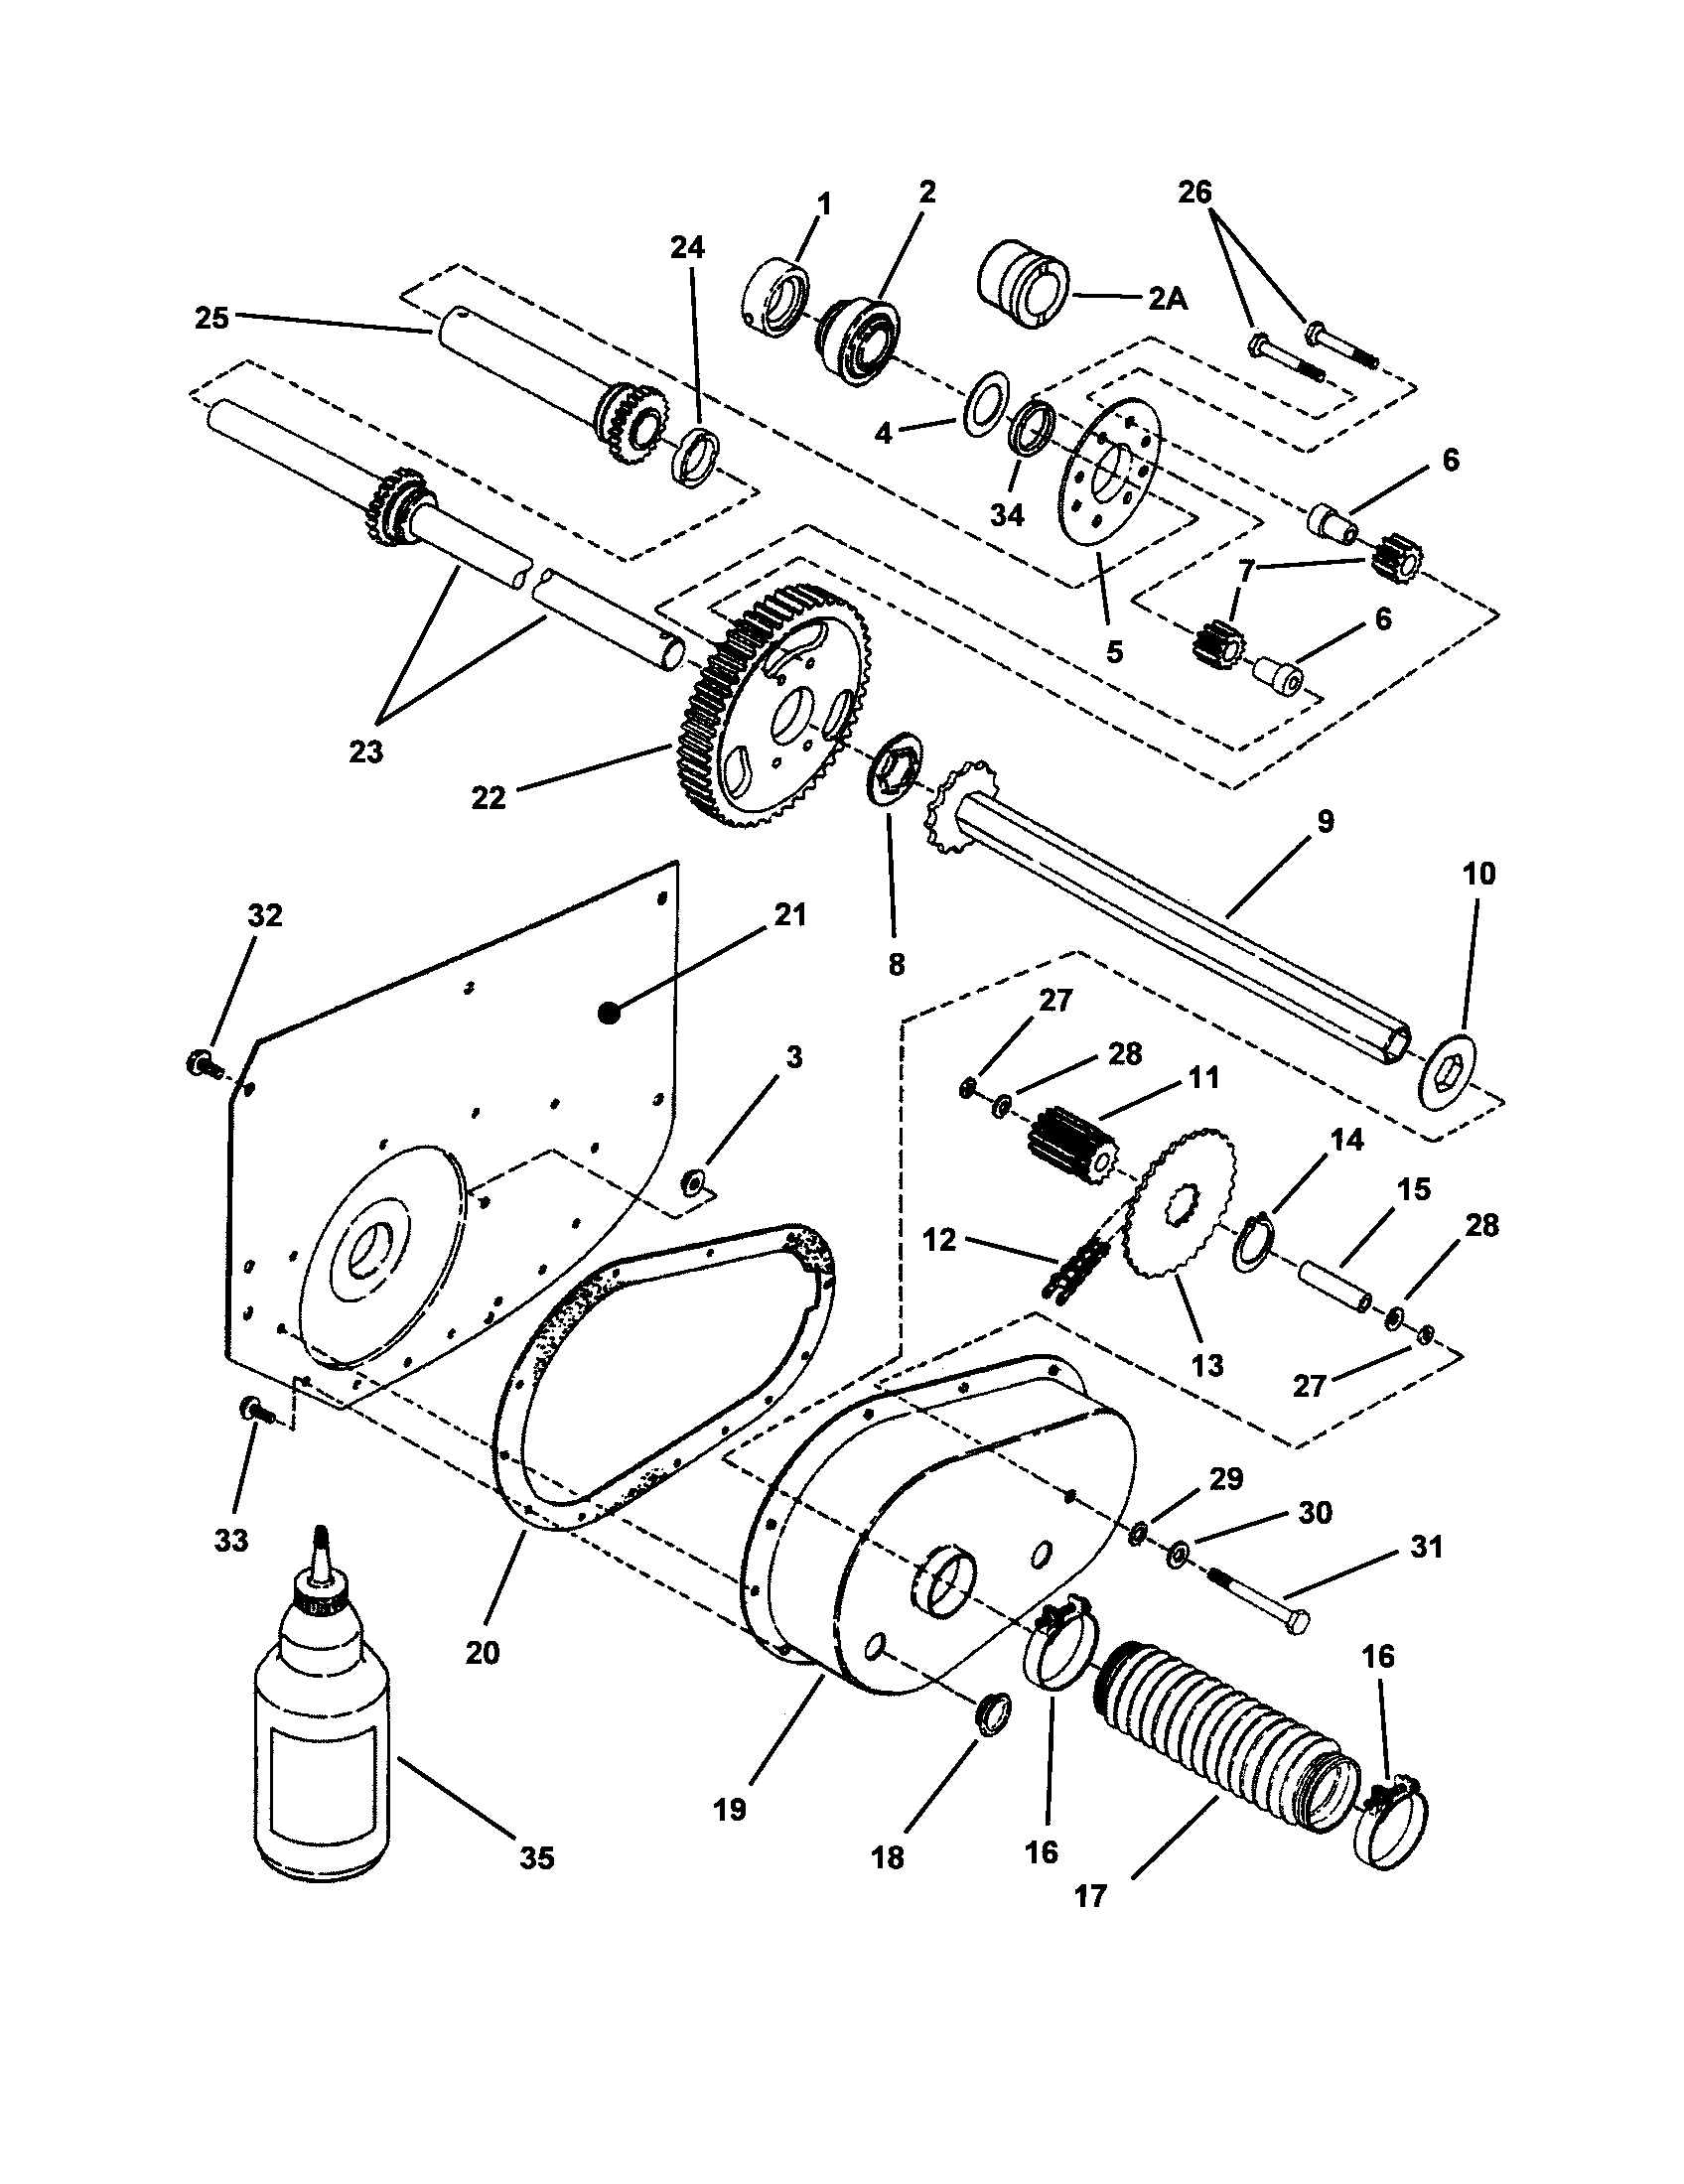 Ford 200 Engine Parts Diagram • Wiring Diagram For Free